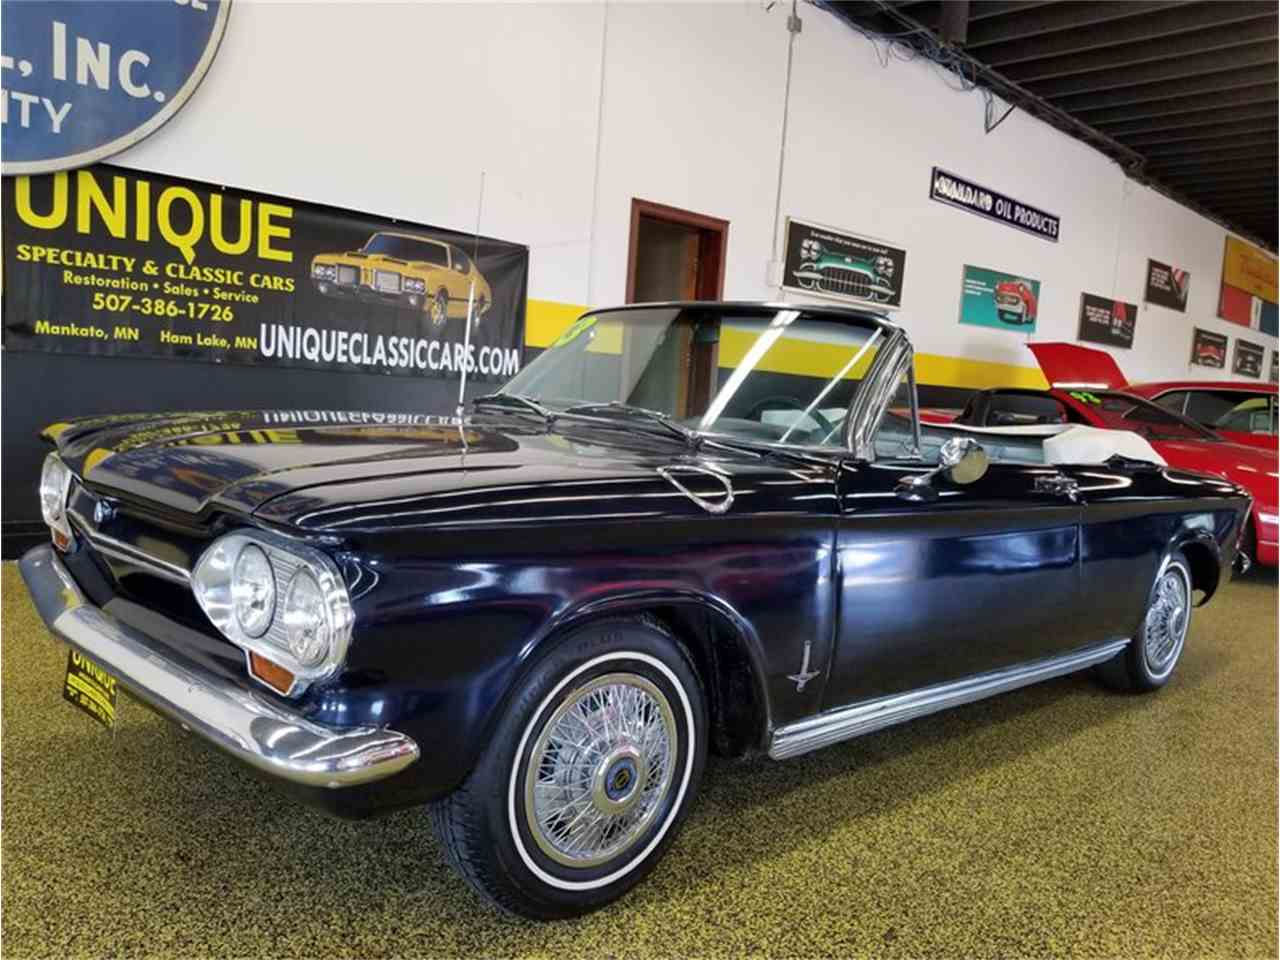 Large Picture of '63 Corvair Monza Spyder Convertible - LTPZ